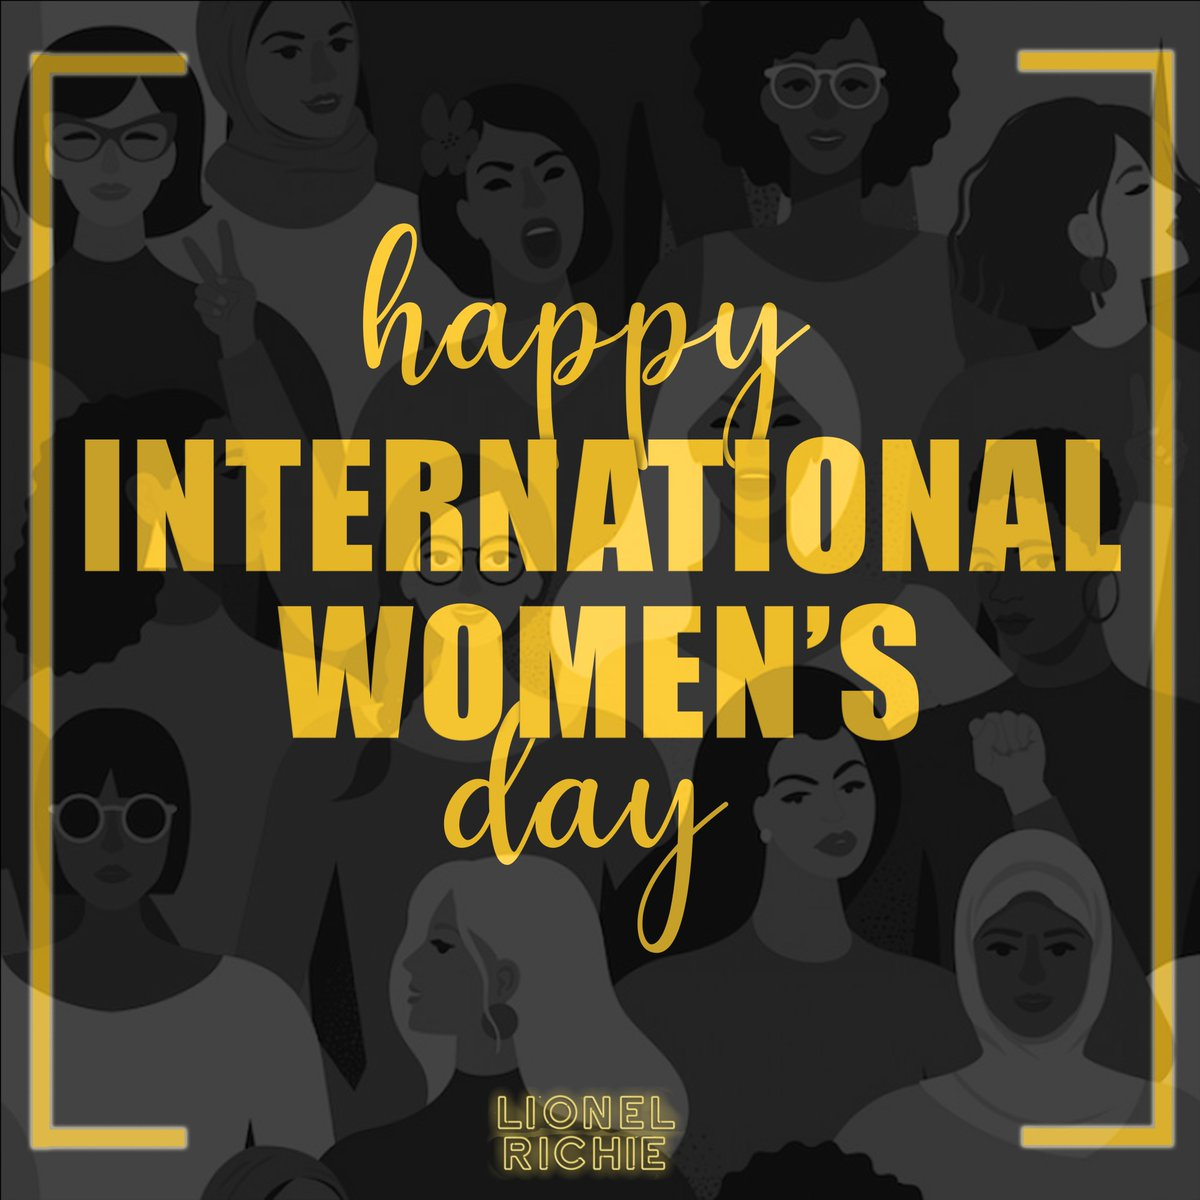 Happy International Women's Day to all the incredible women around the world we celebrate you today and every day. #InternationalWomensDay #IWD2021 https://t.co/Oja9DivCZw